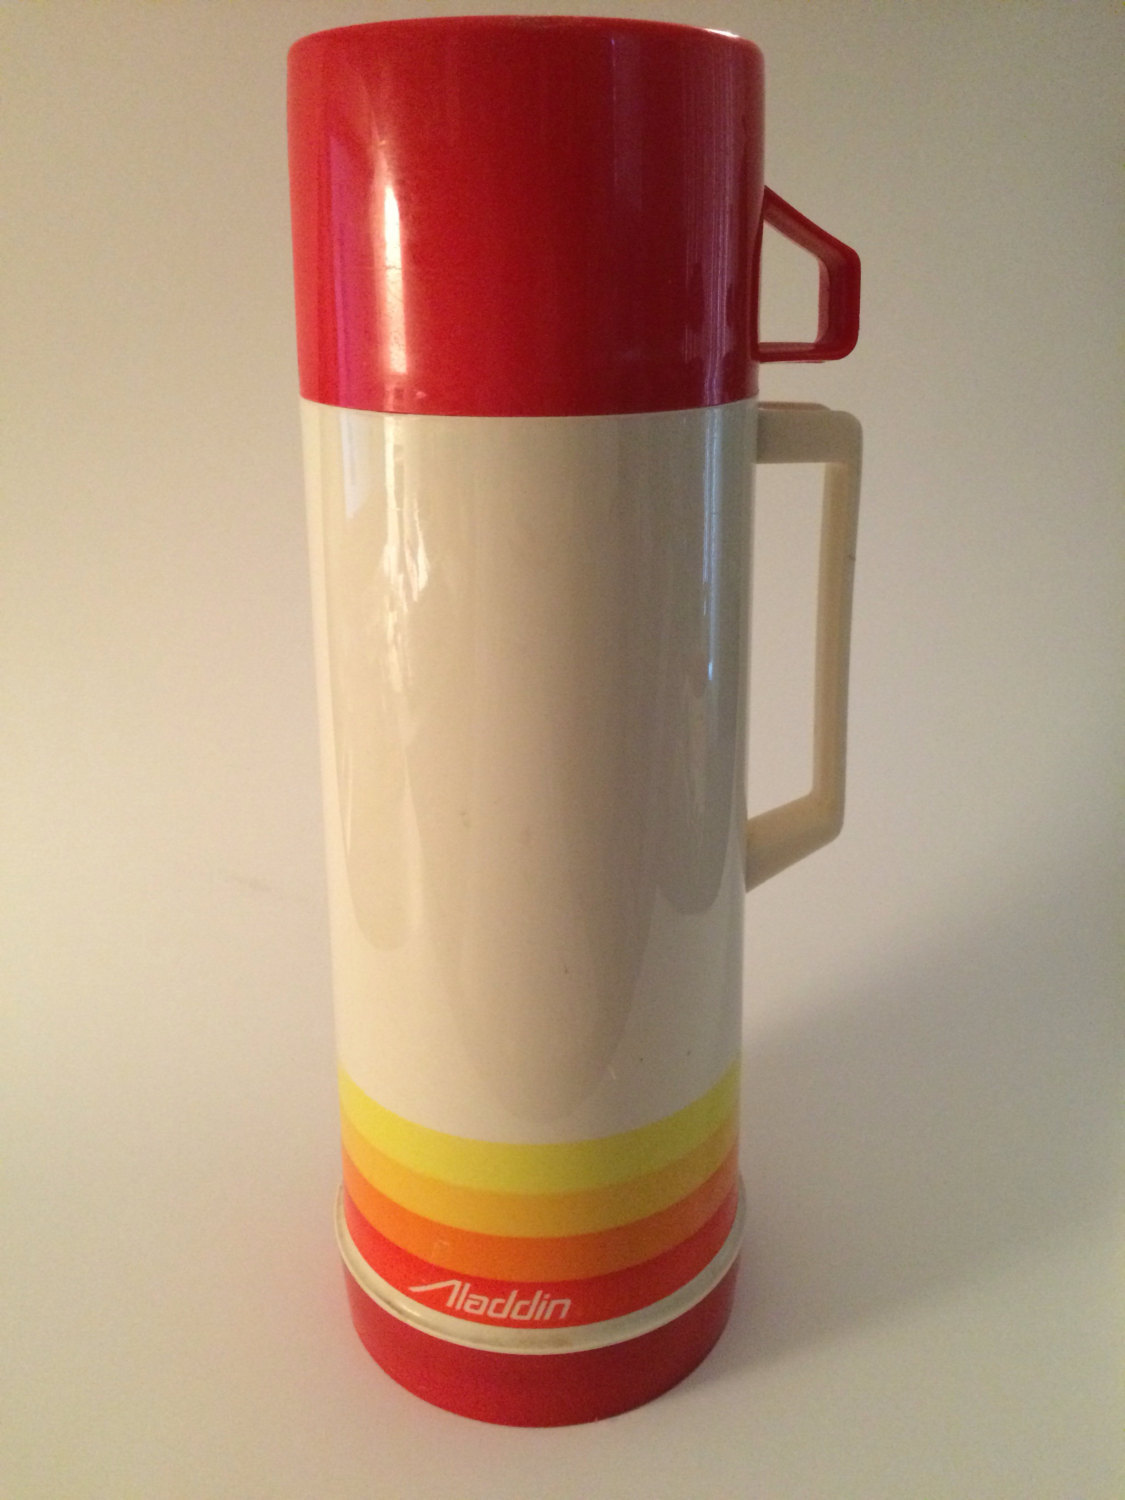 Vintage Aladdin Thermos Coffee Beverage Thermos Retro Red Yellow Orange 1970`s